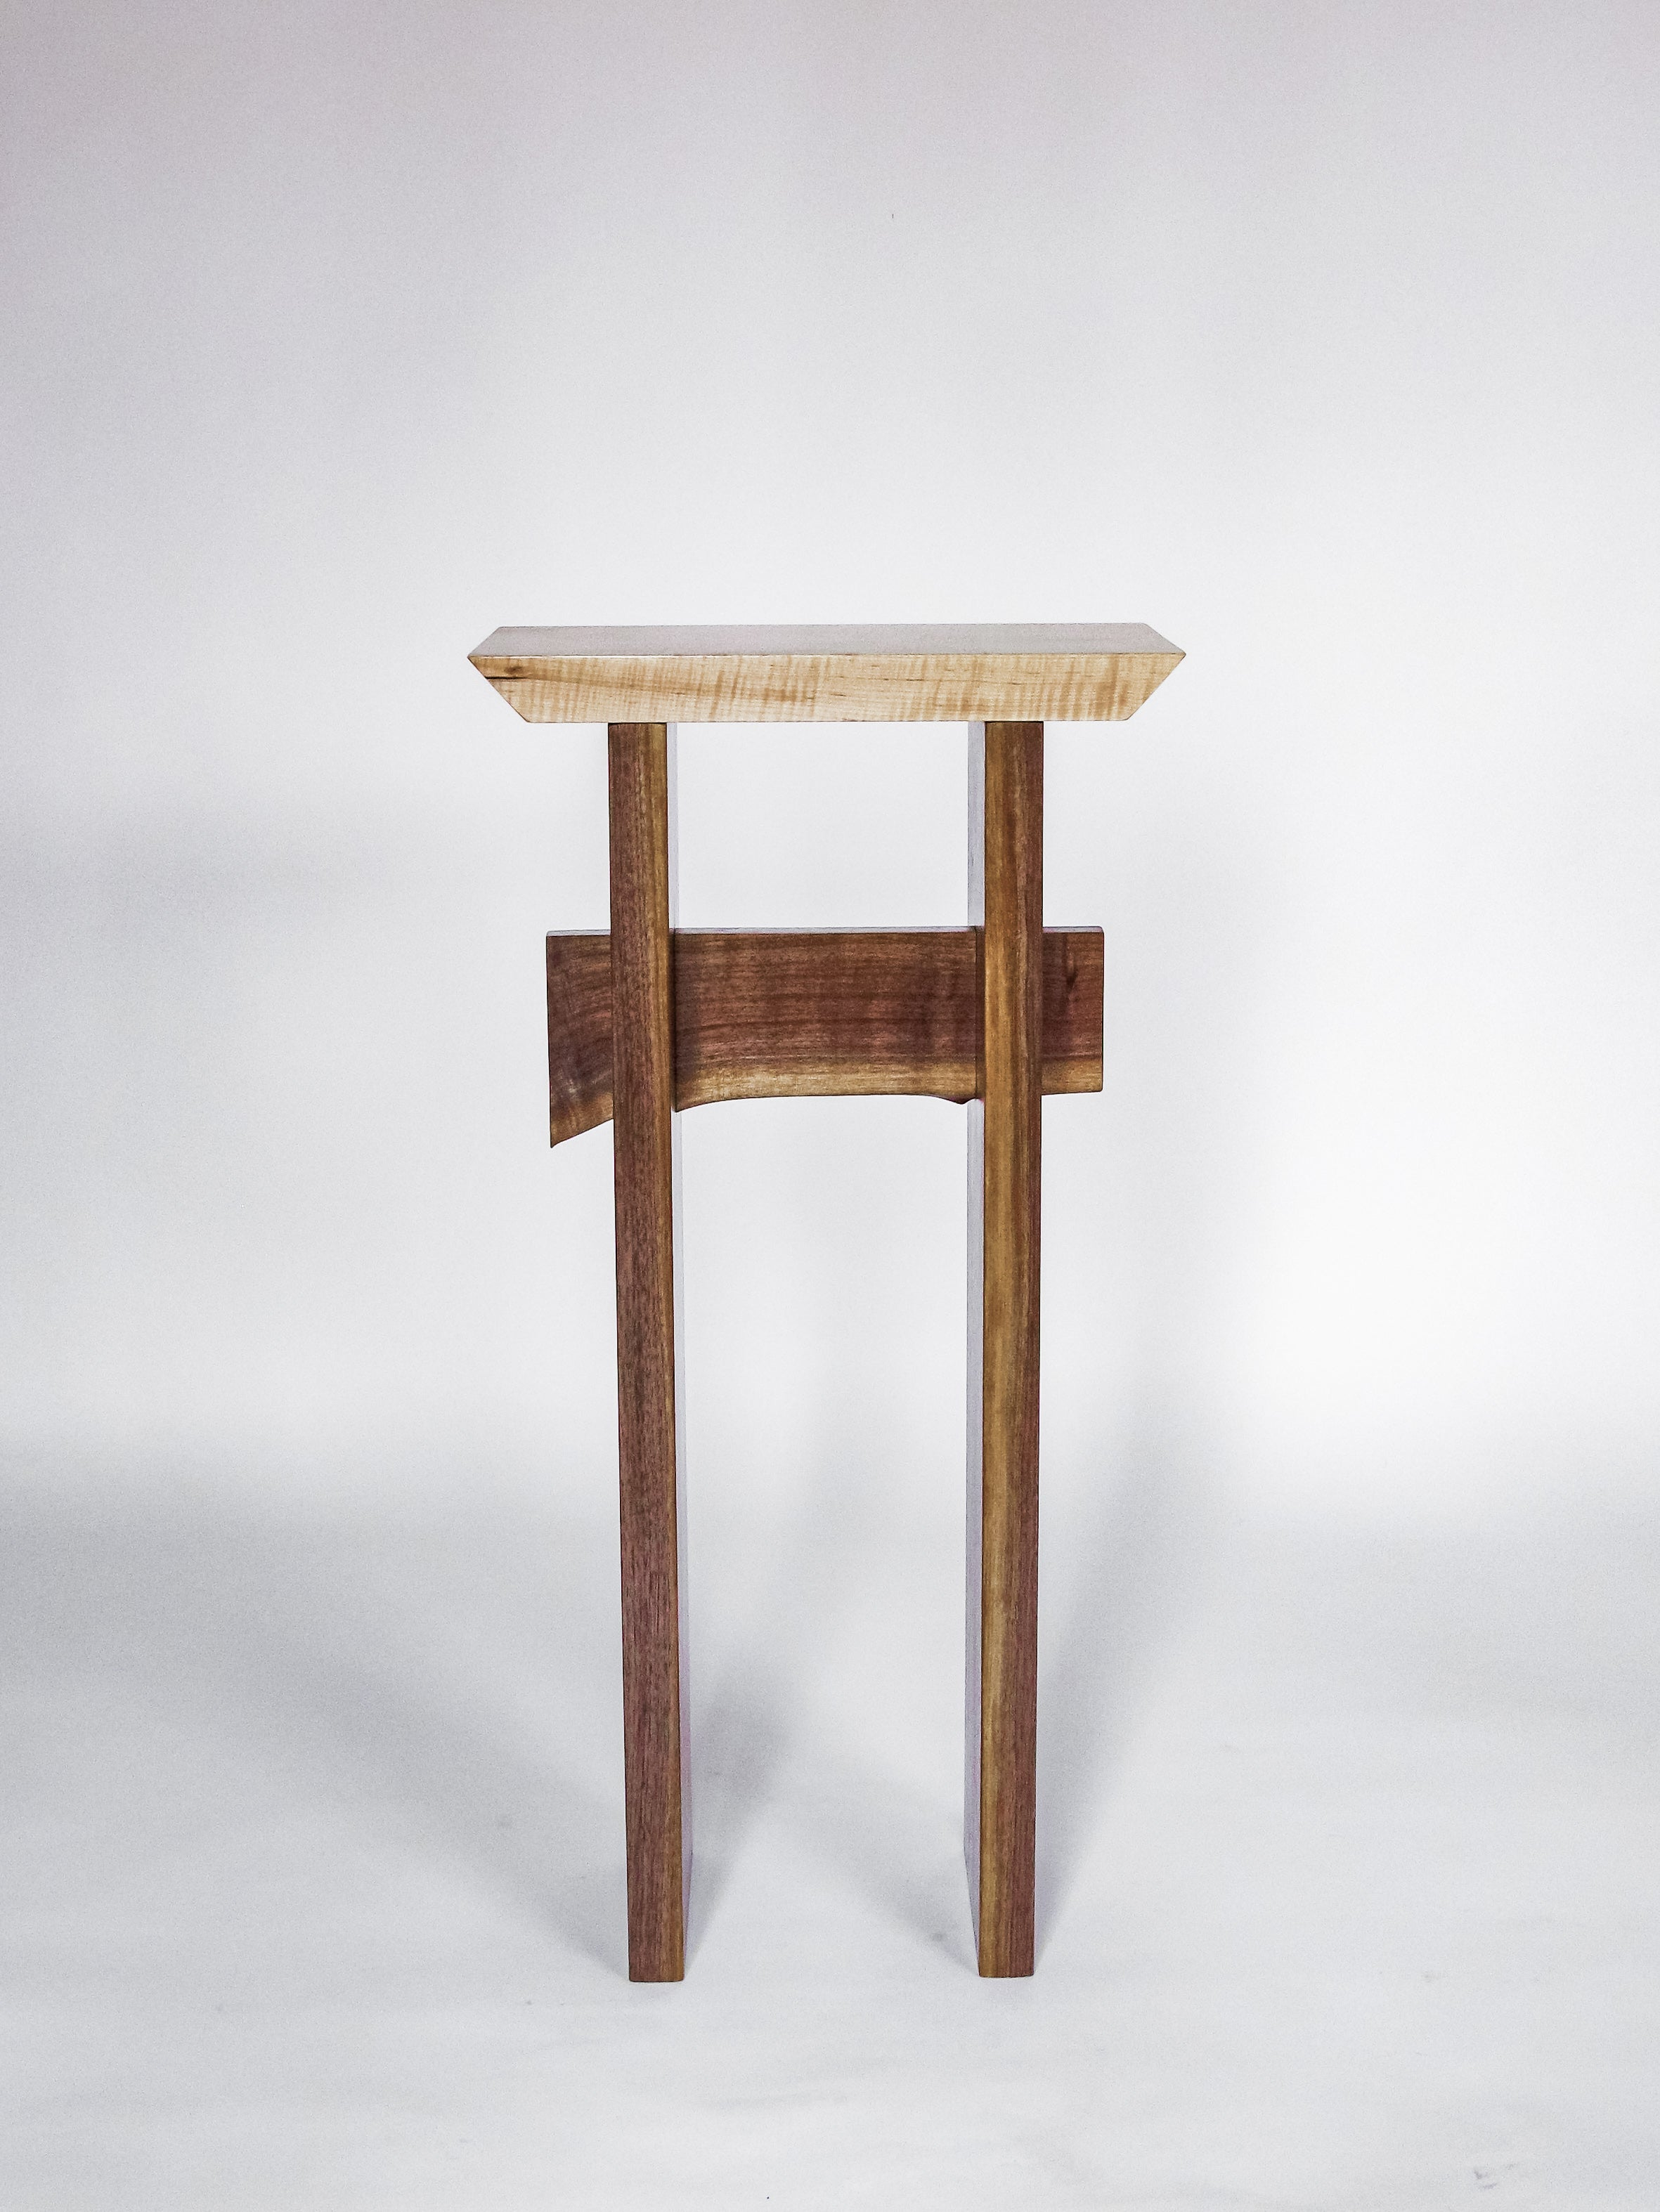 tall entryway table - minimalist wood furniture design